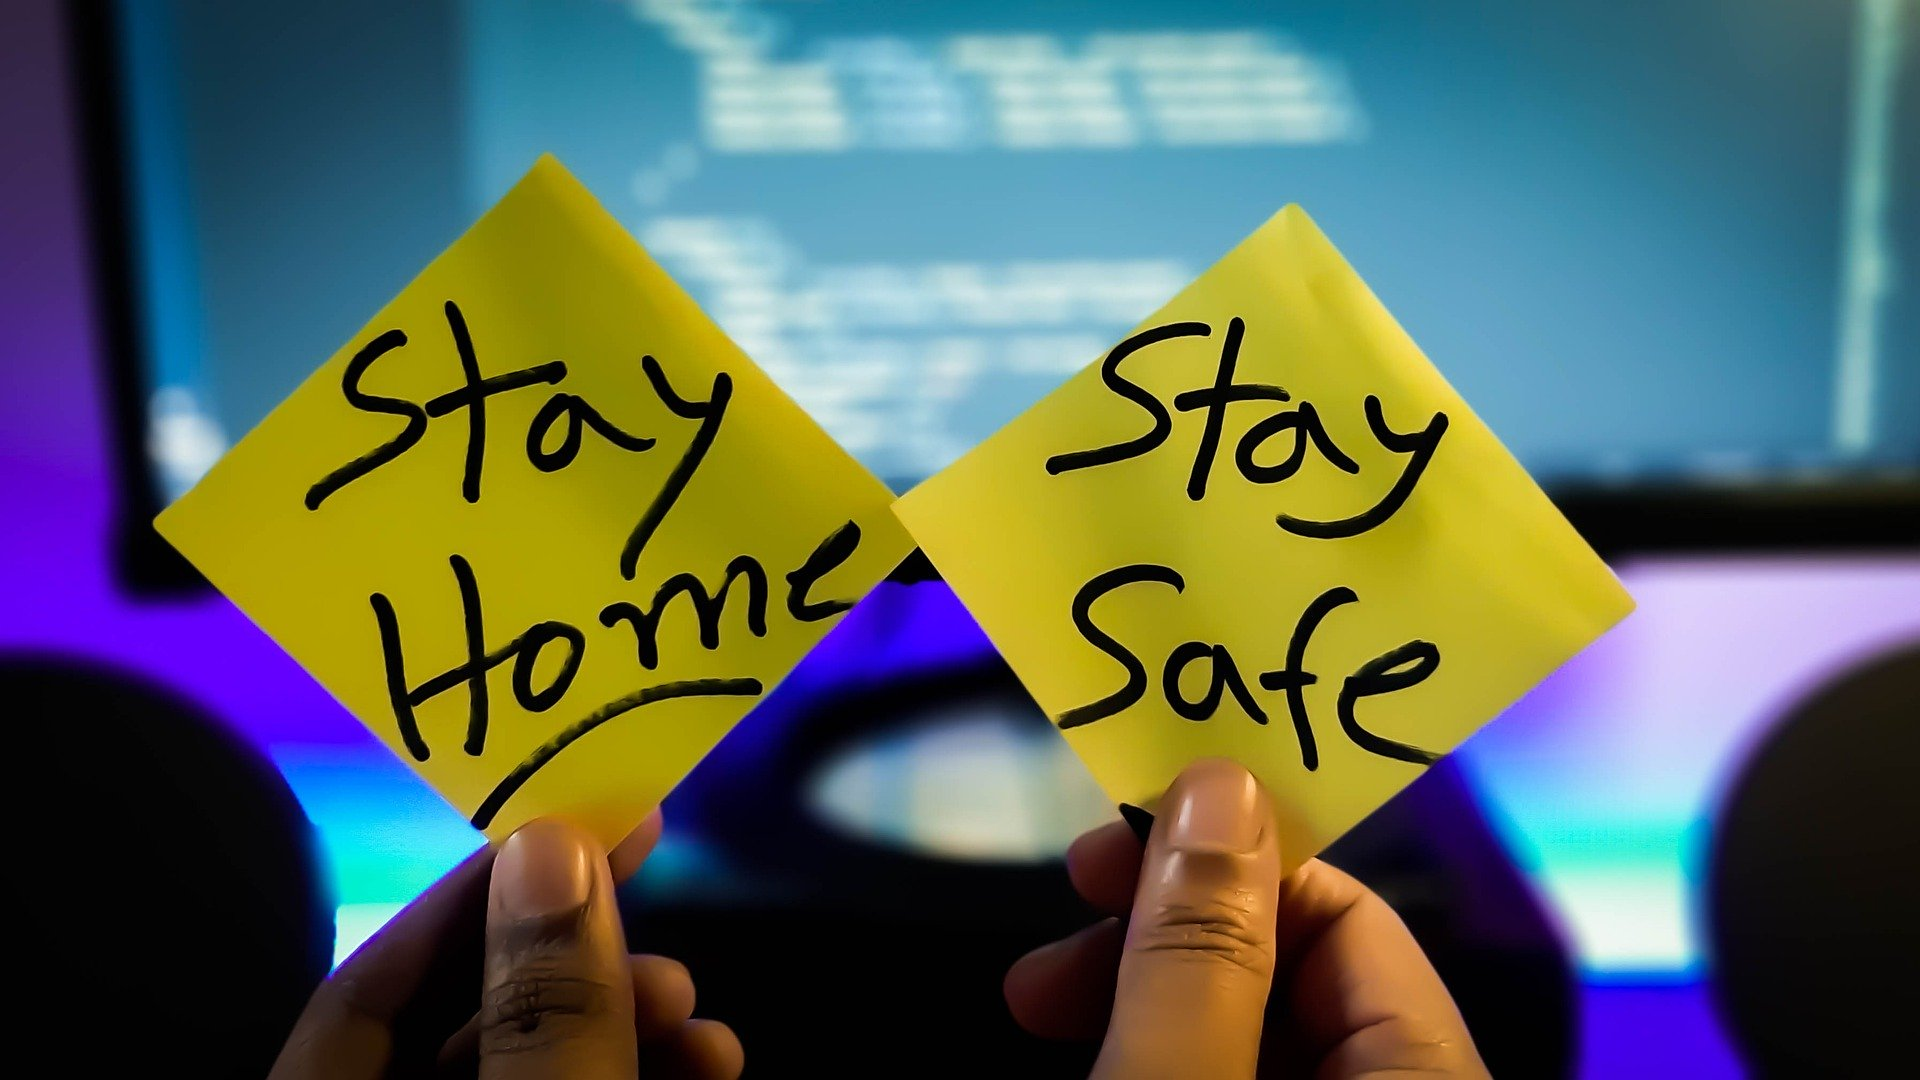 STAYHOME STAY SAFE